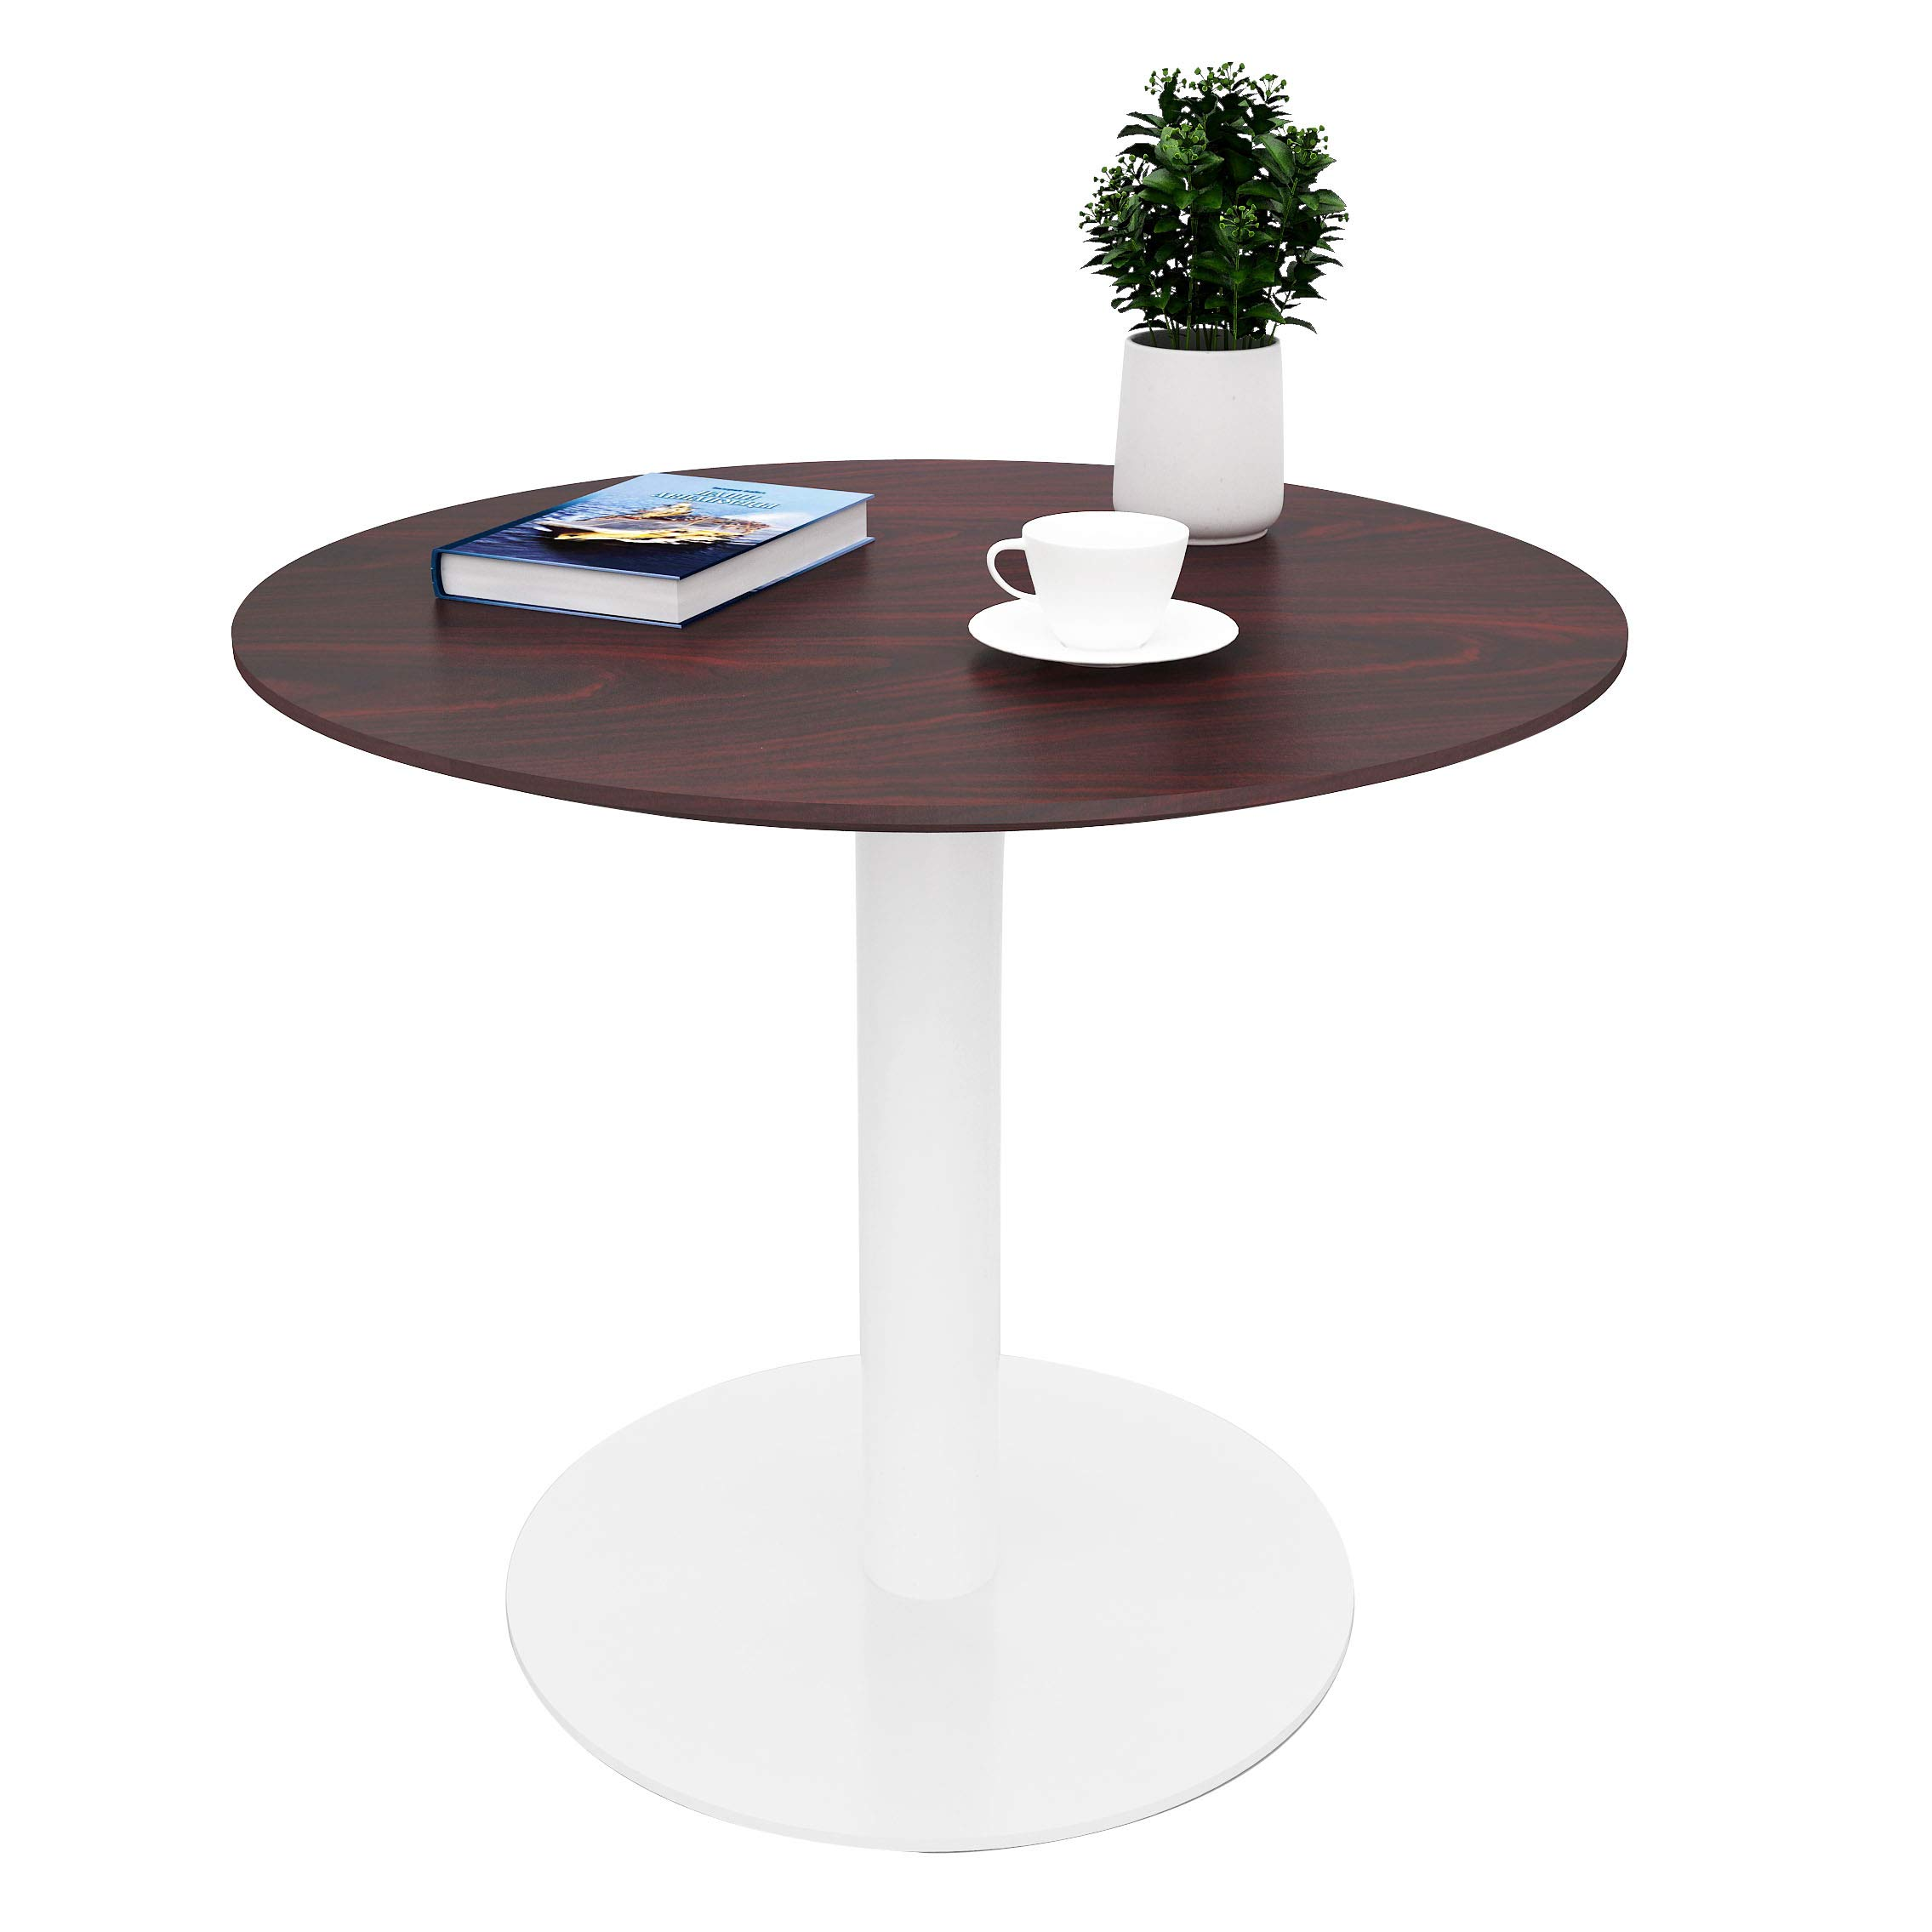 Sunon Round Cafe Table,Small Pedestal Table for Pub/Conference/Living Room (27.5 x 23.6 inch Height, Mahogany) by Sunon